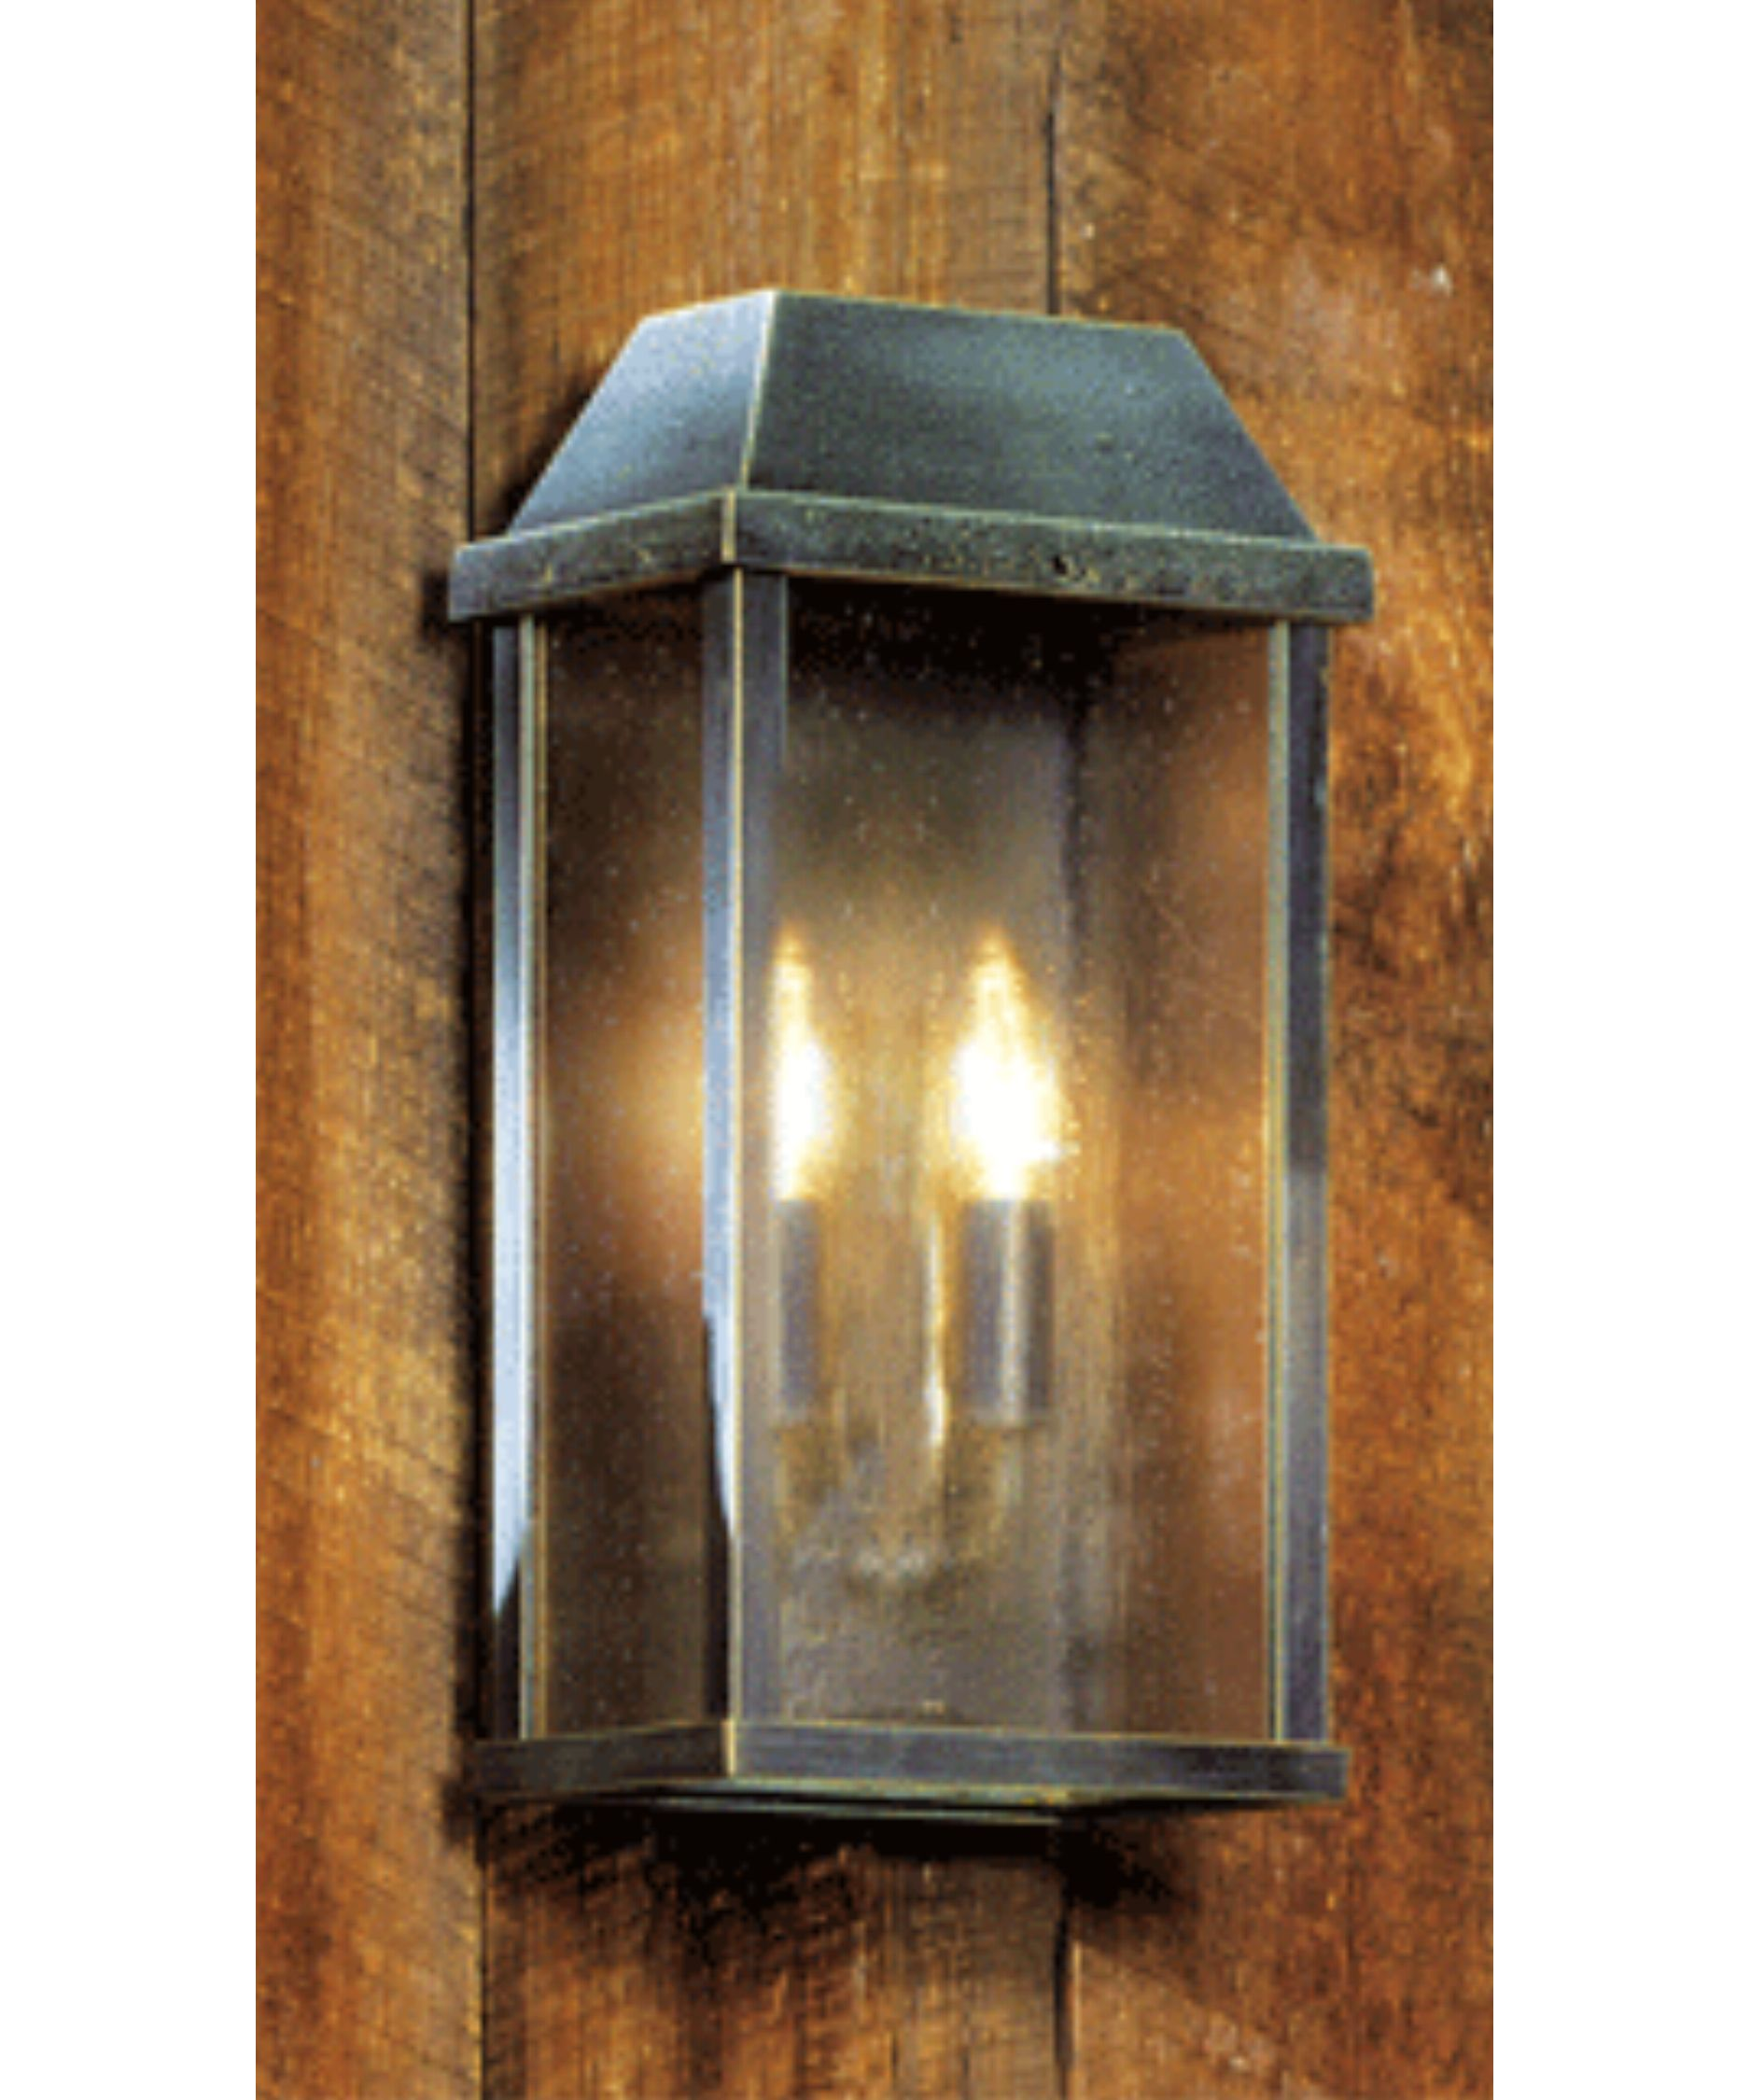 Hanover lantern b8503 salem large 2 light outdoor wall light hanover lantern b8503 salem large 2 light outdoor wall light capitol lighting 1 800lighting aloadofball Images